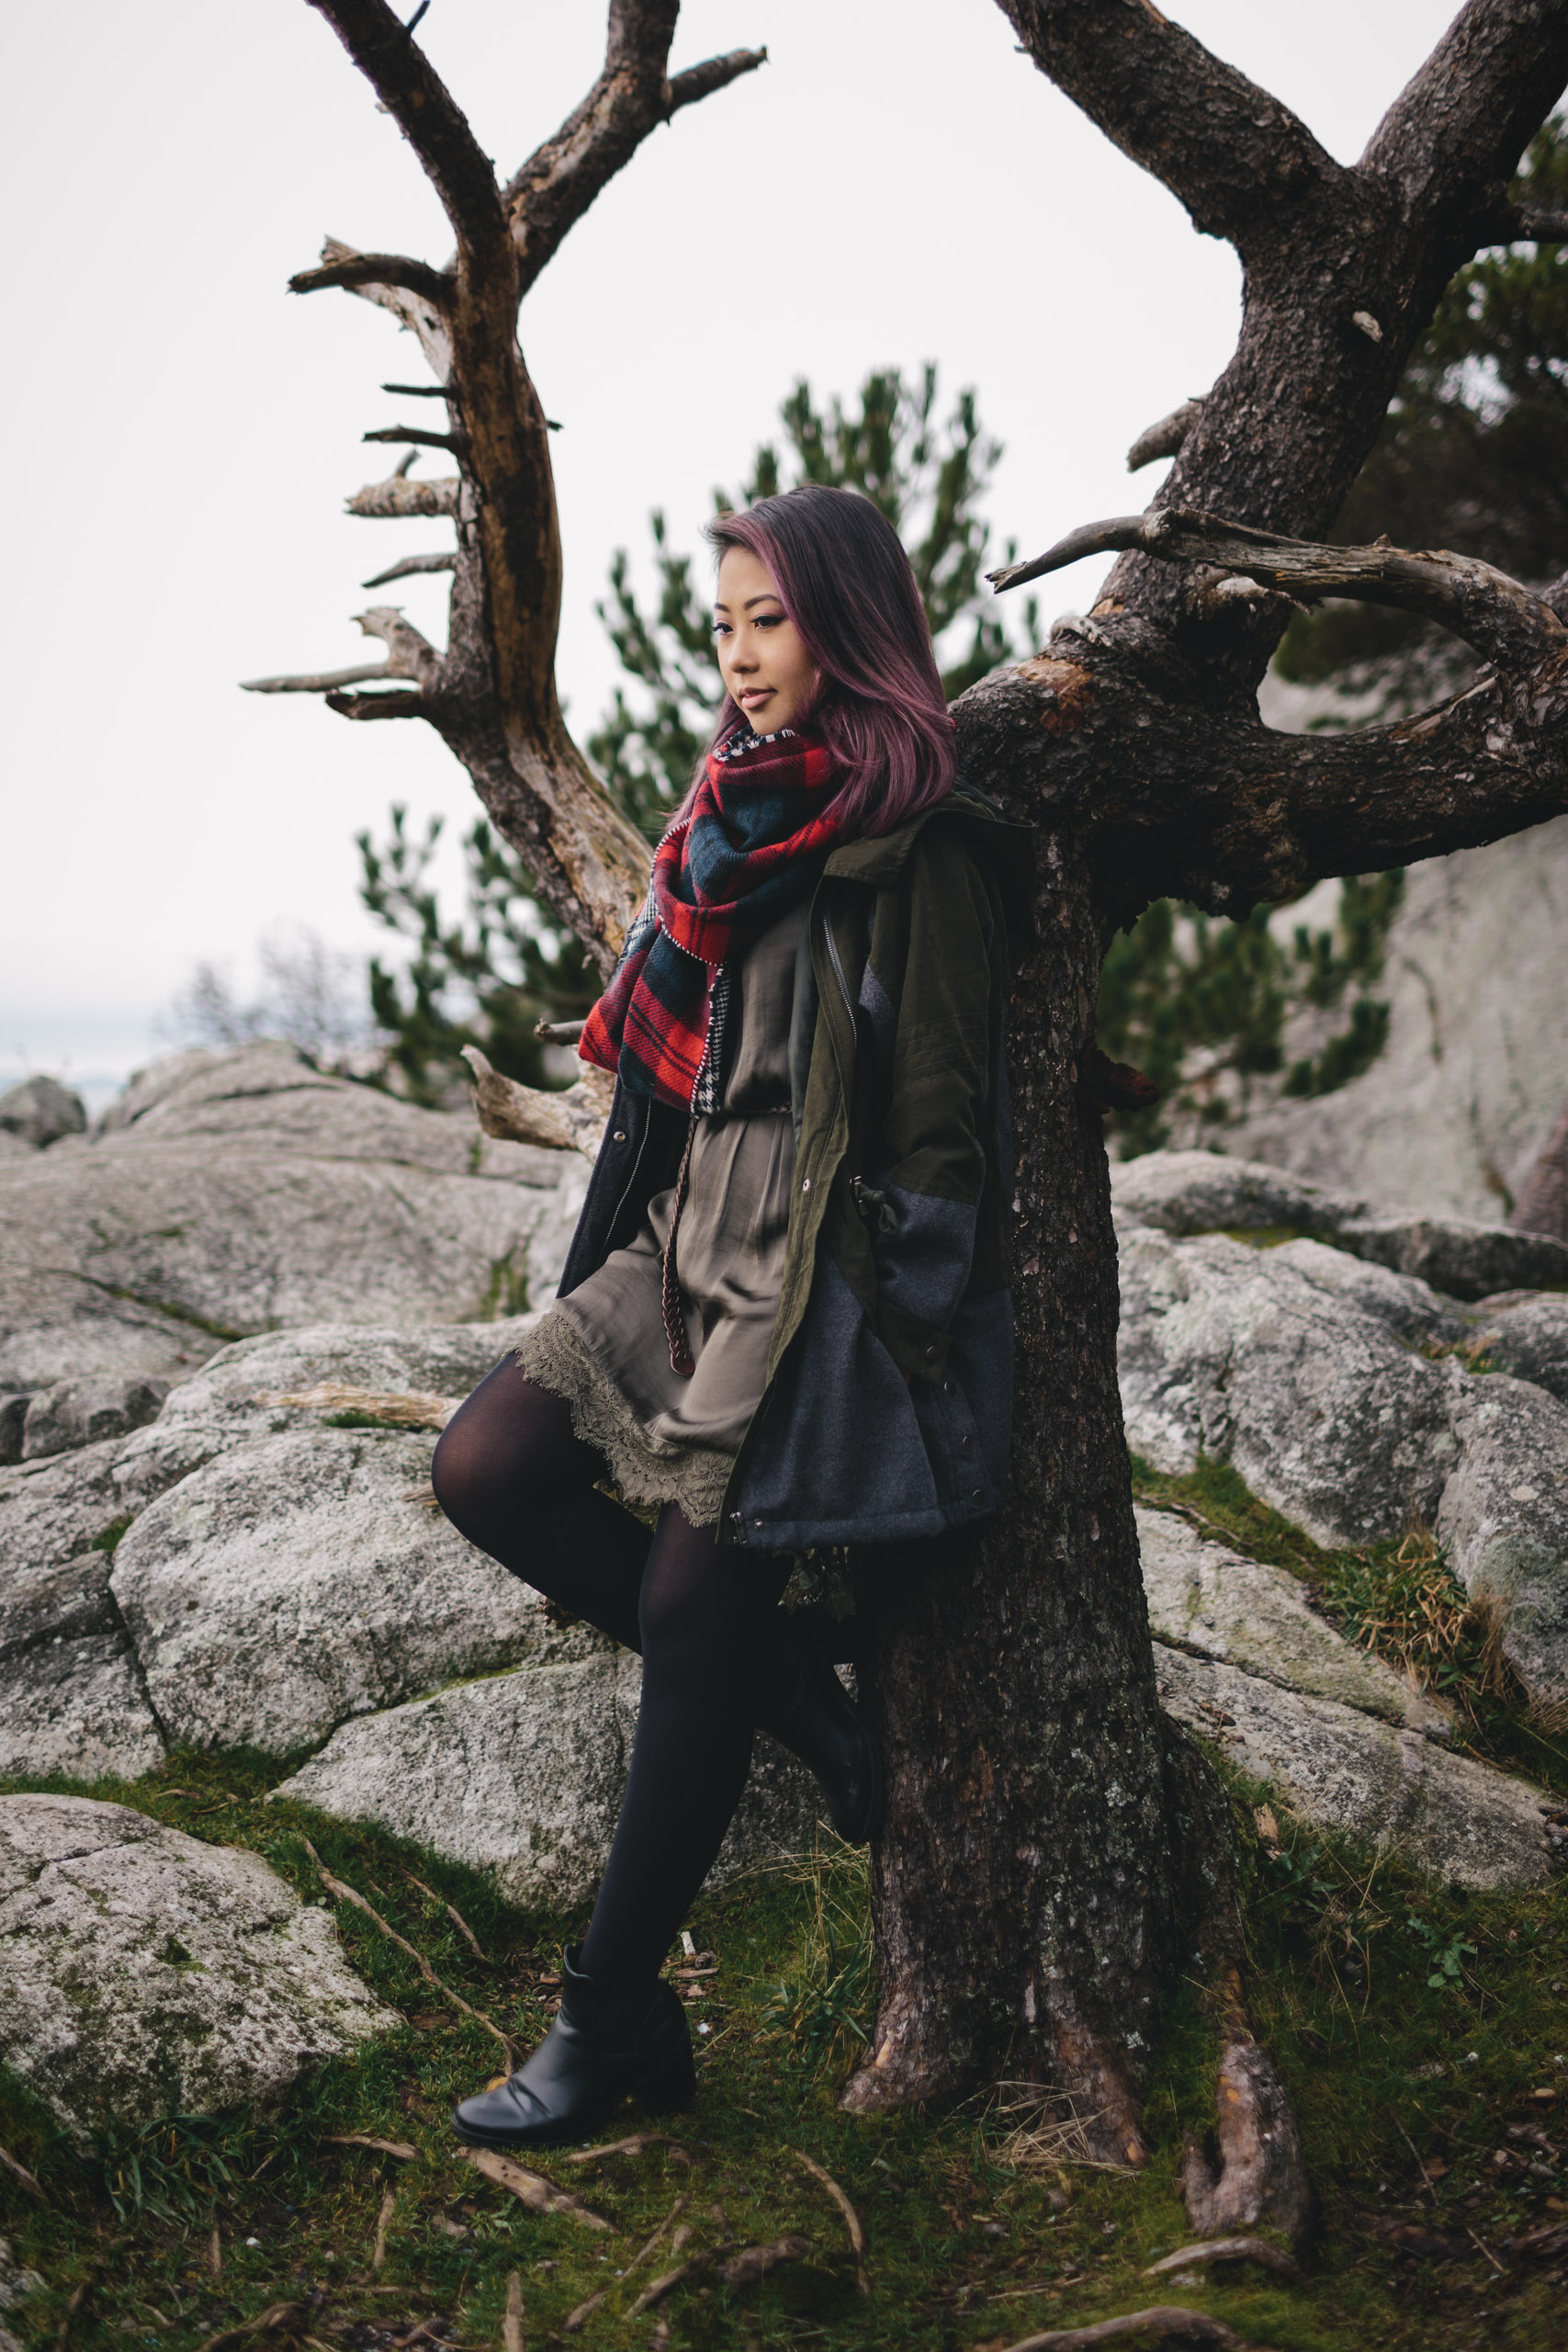 vancouver portrait photography of Tien Nguyen at Whytecliff Park